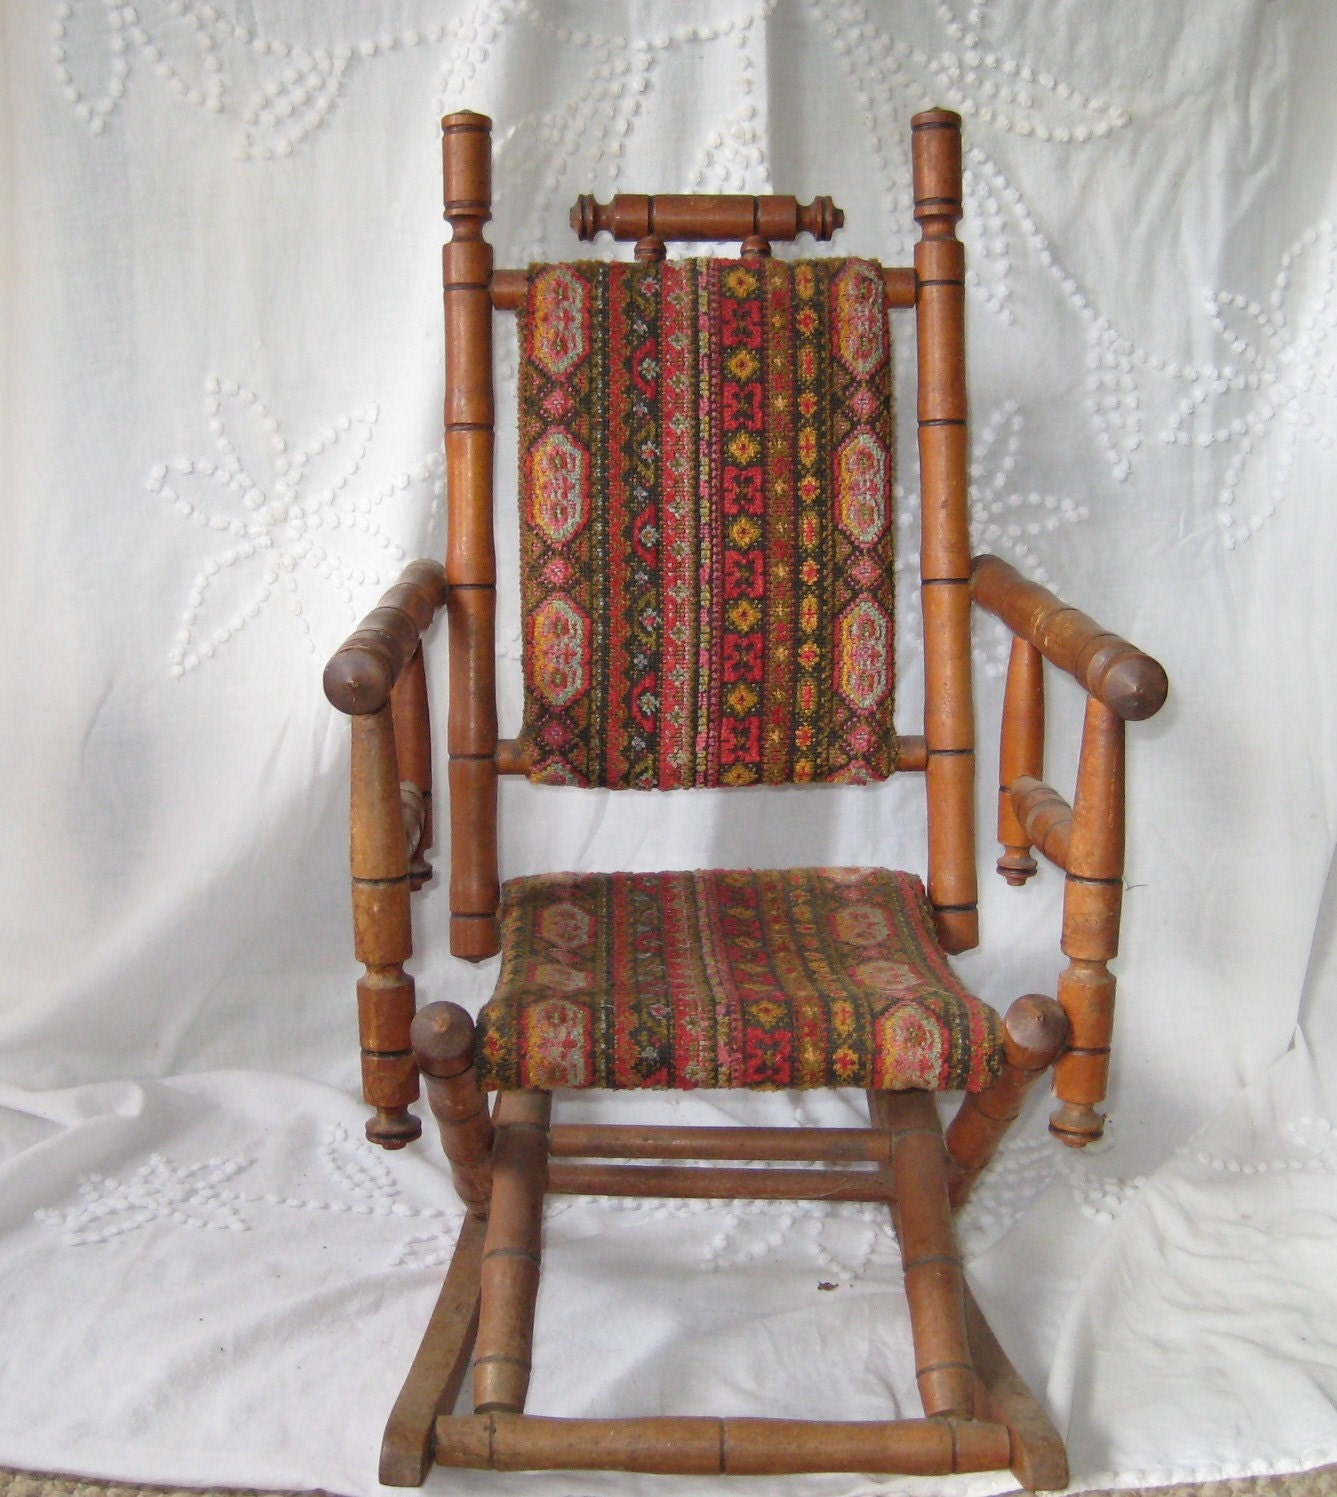 🔎zoom - Antique Rocking Chair Childs Rocking Chair Upholstered